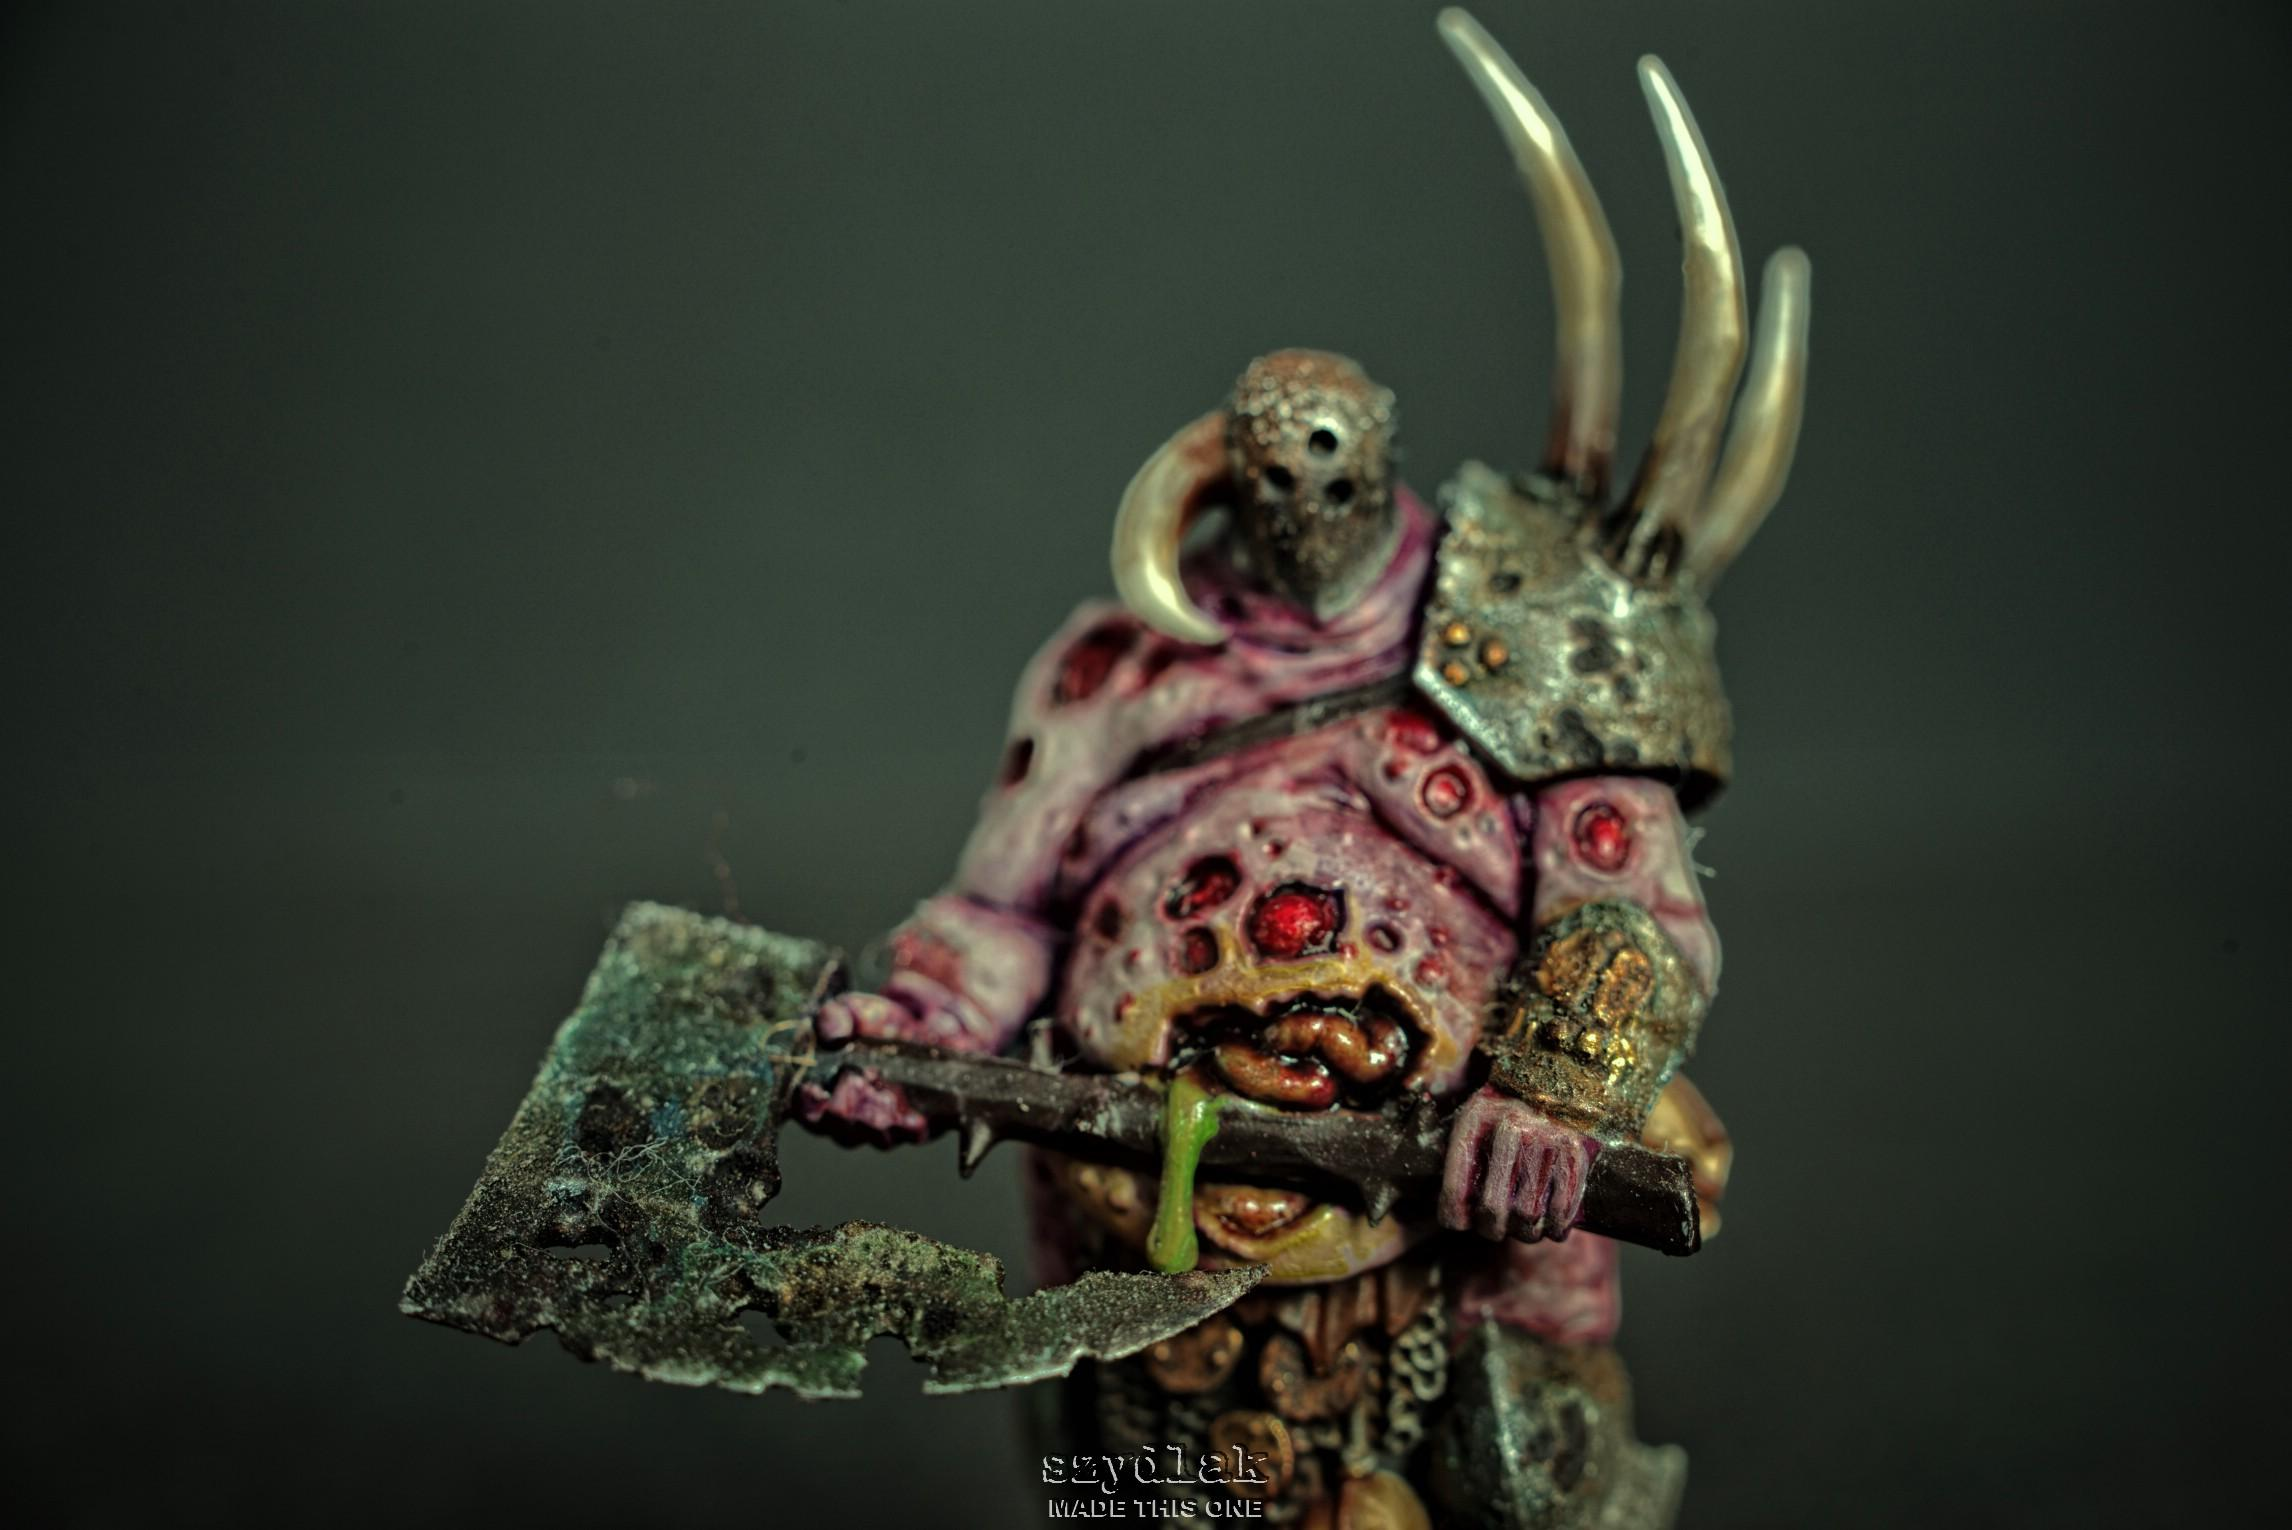 Axe, Bloody, Chaos, Daemons, Dark, Decay, Guts, Helmet, Lord, Miniature, Nurgle, Nurgle's Rot, Rust, Rusty, Szydlak, Texture, Warhammer 40,000, Warhammer Fantasy, Weapon